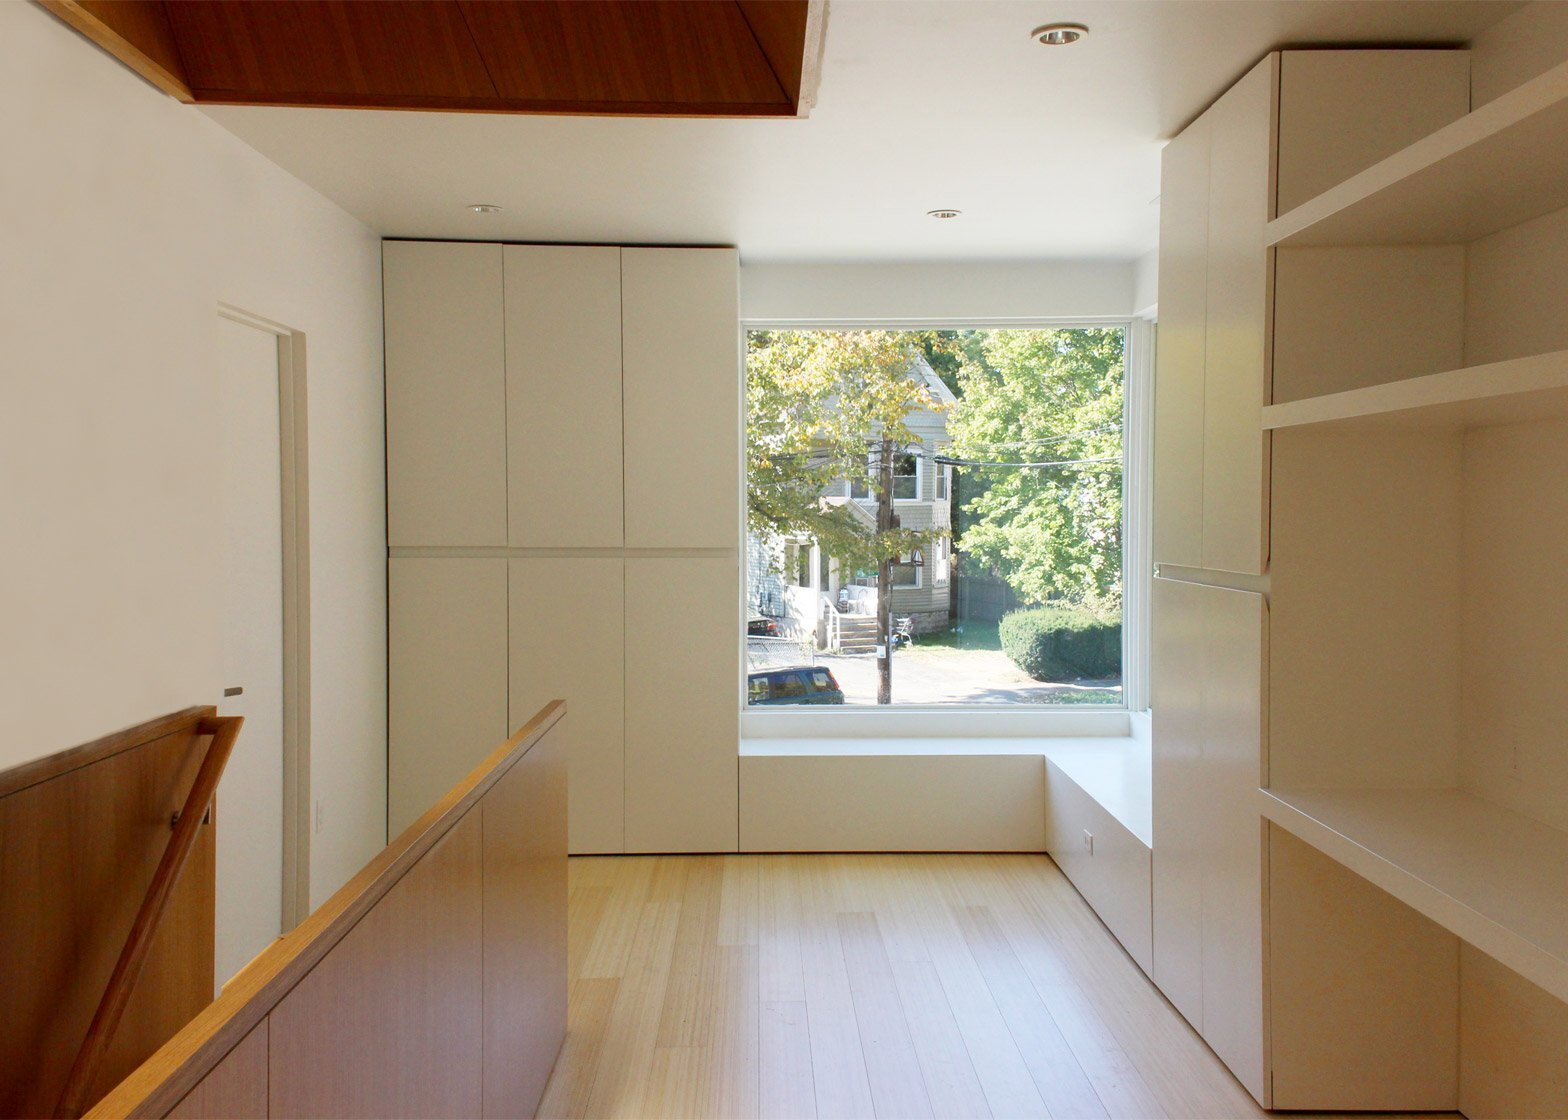 Small House - Jim Vlock Building Project - Yale School of Architecture - New Haven - Storage - Humble Homes